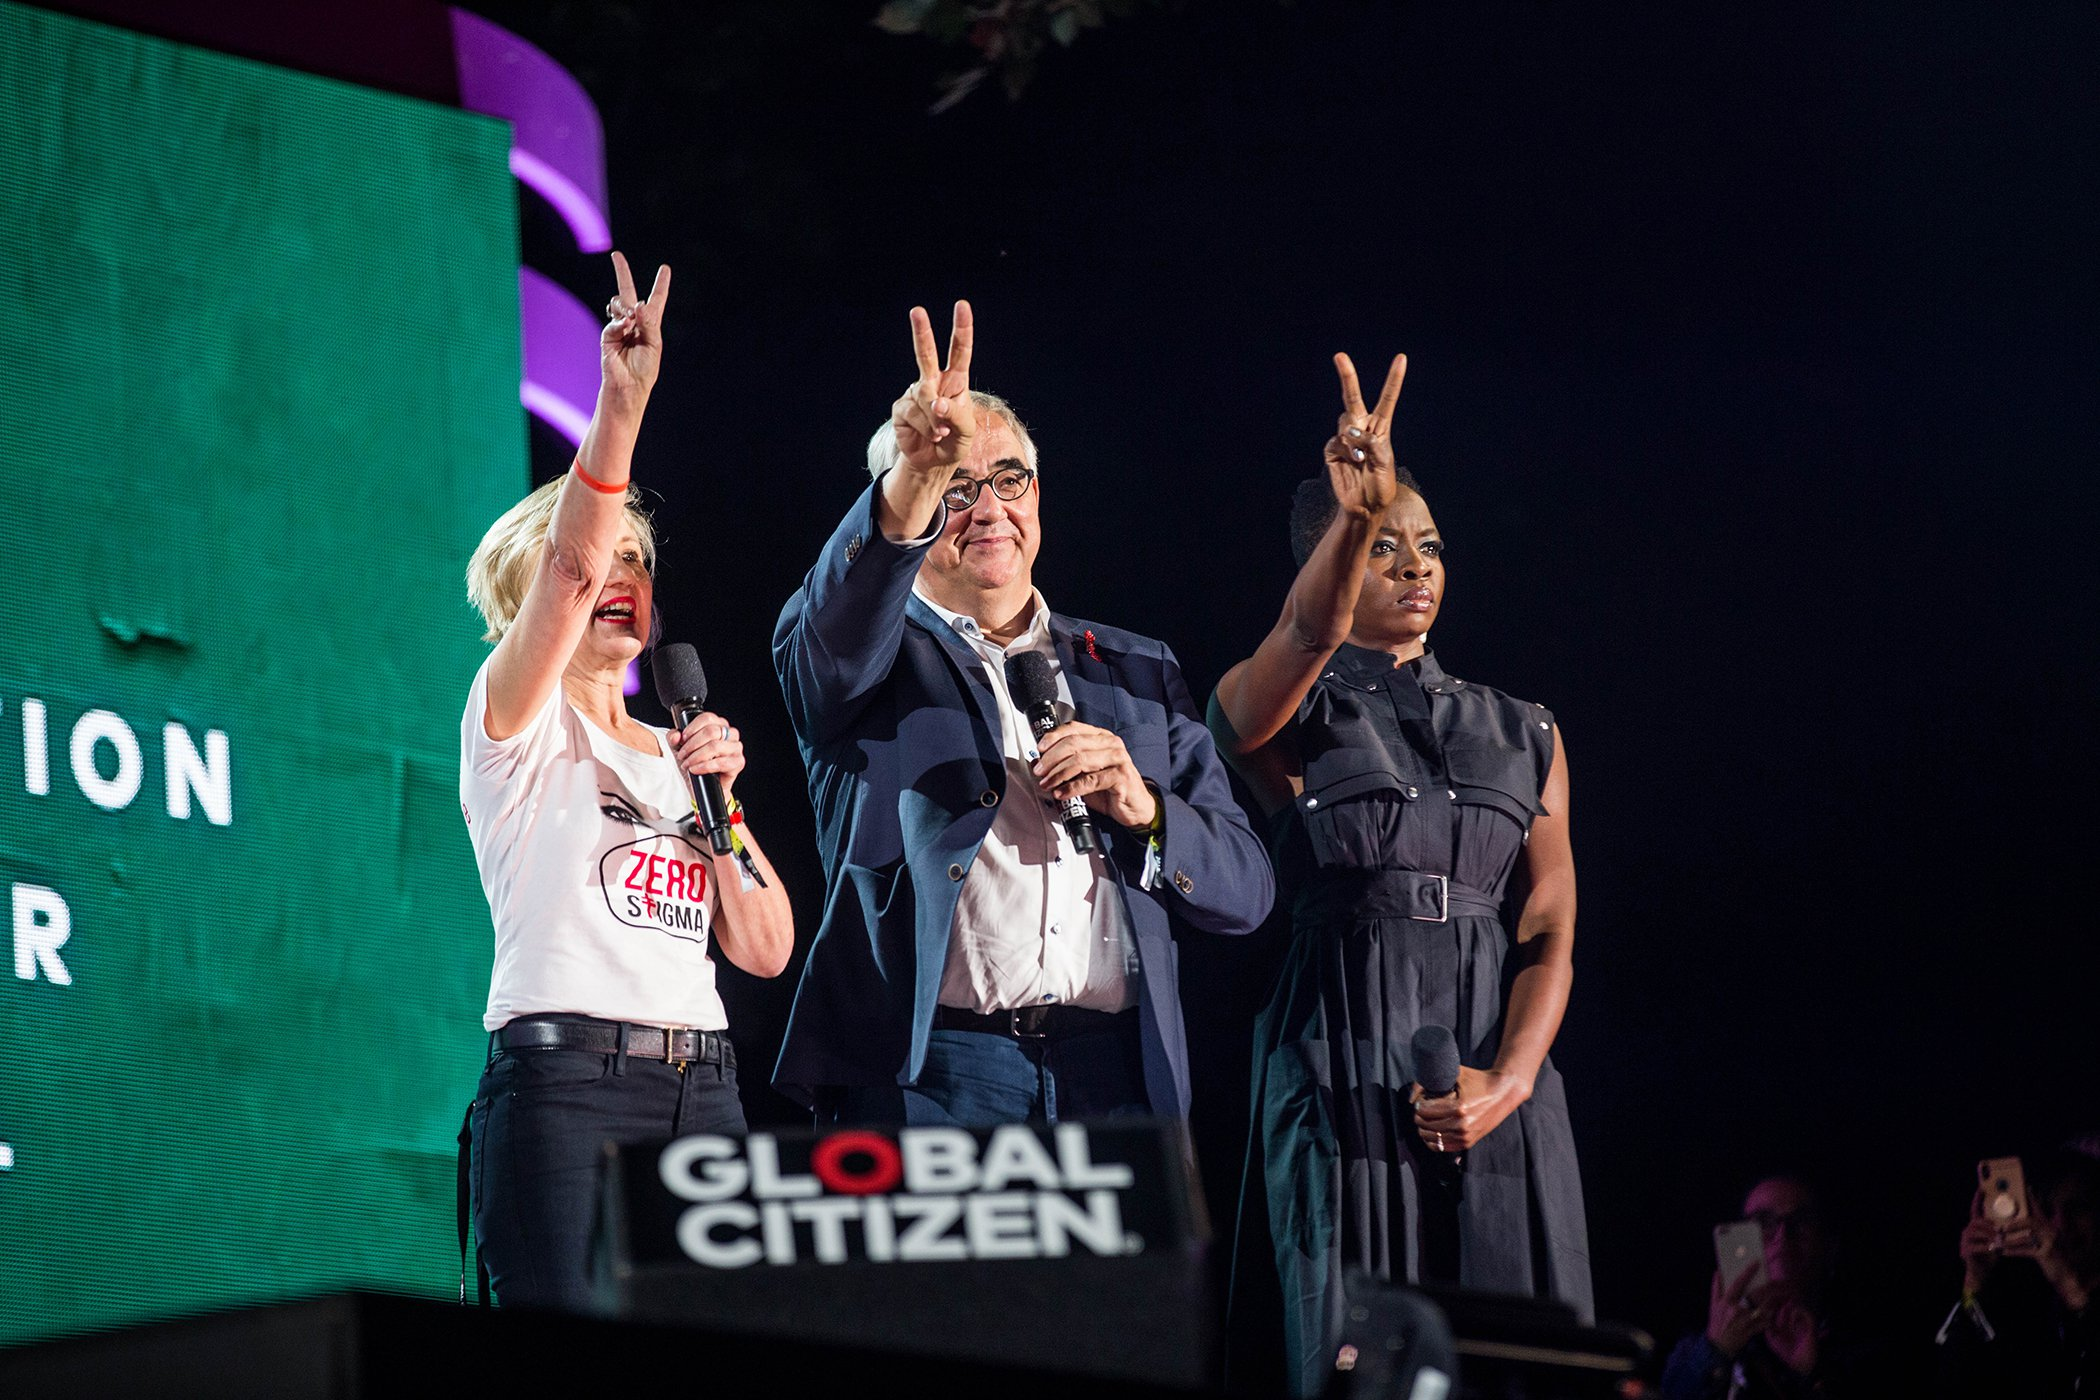 GCF18_Speakers_MengwenCaoforGlobalCitizen008092.jpg